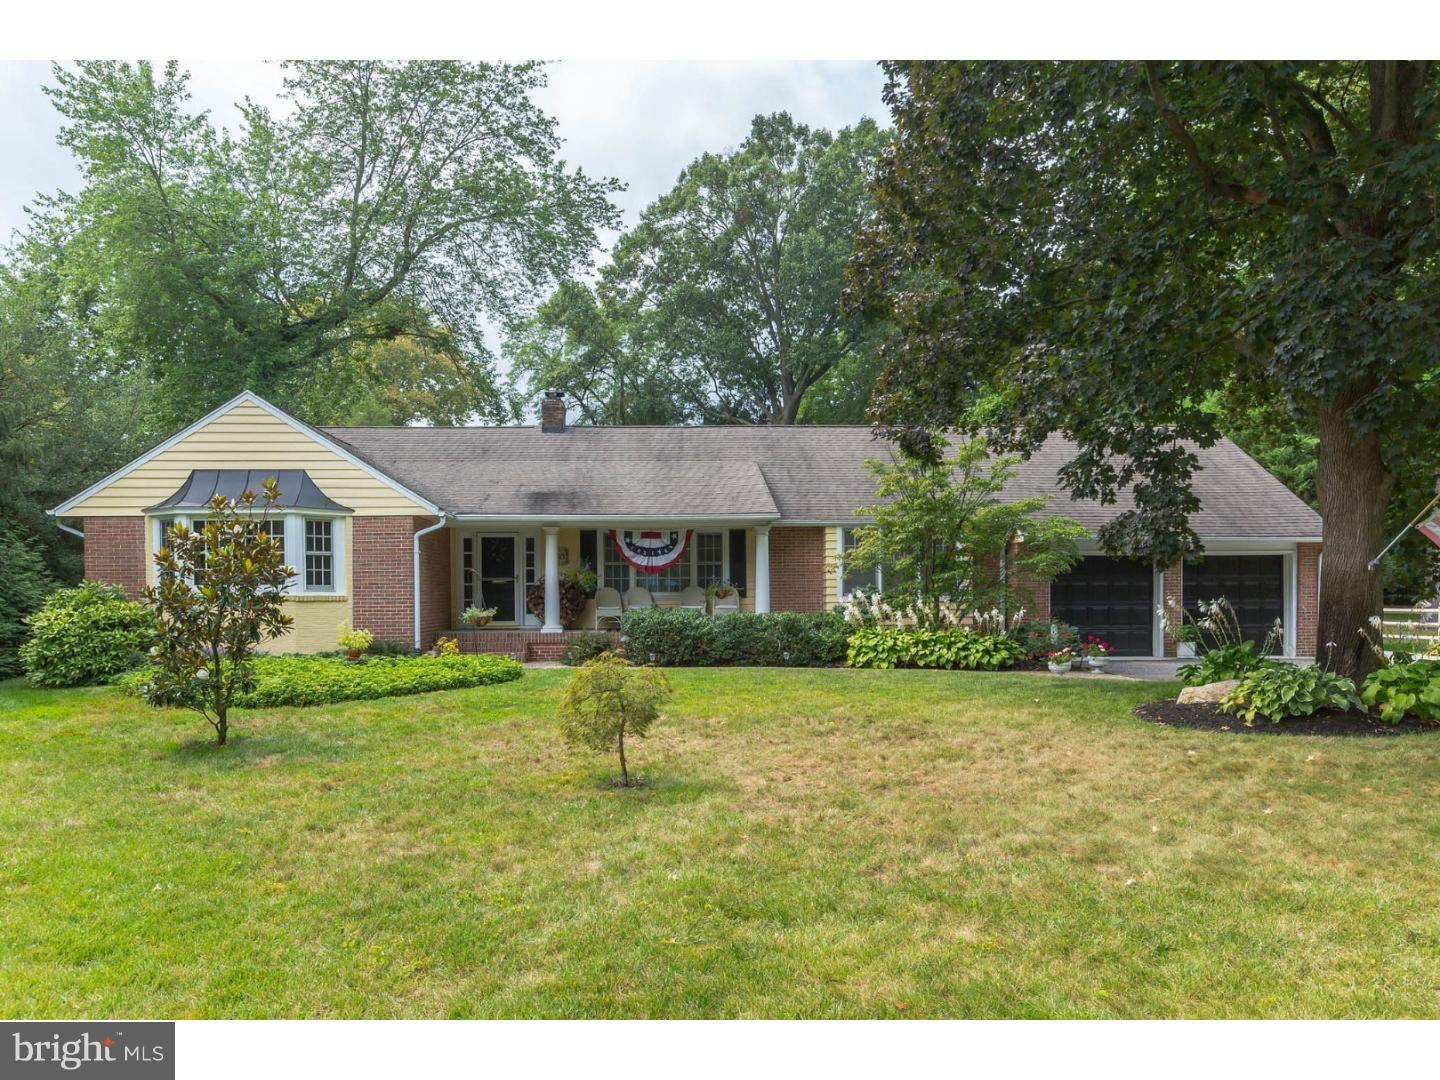 18 LIPPINCOTT AVENUE, HADDON HEIGHTS, NJ 08035